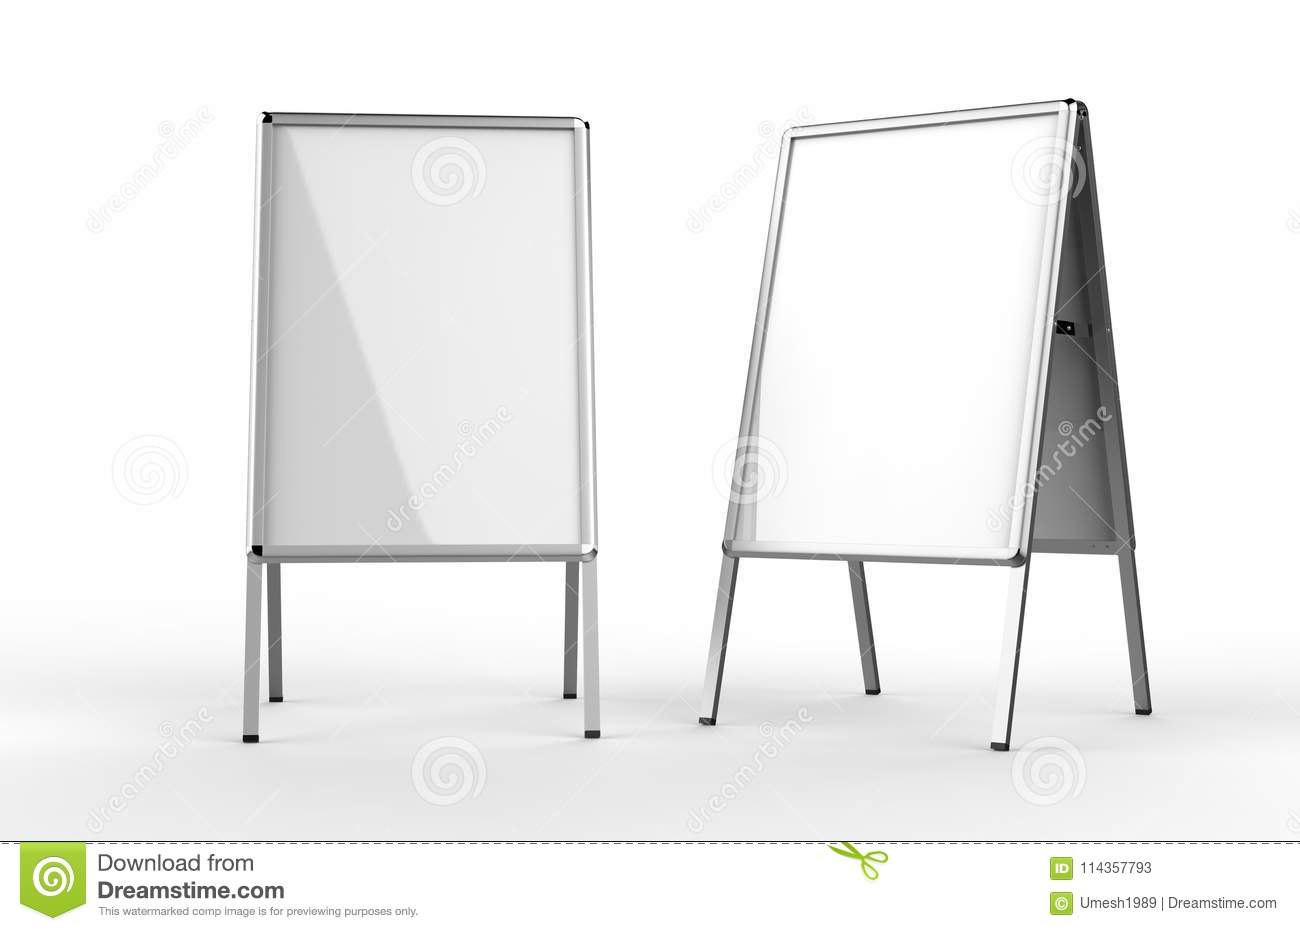 Blank white metallic outdoor advertising stand isolated, Clear street signage board mock up. A-board with metal frame template. 3d